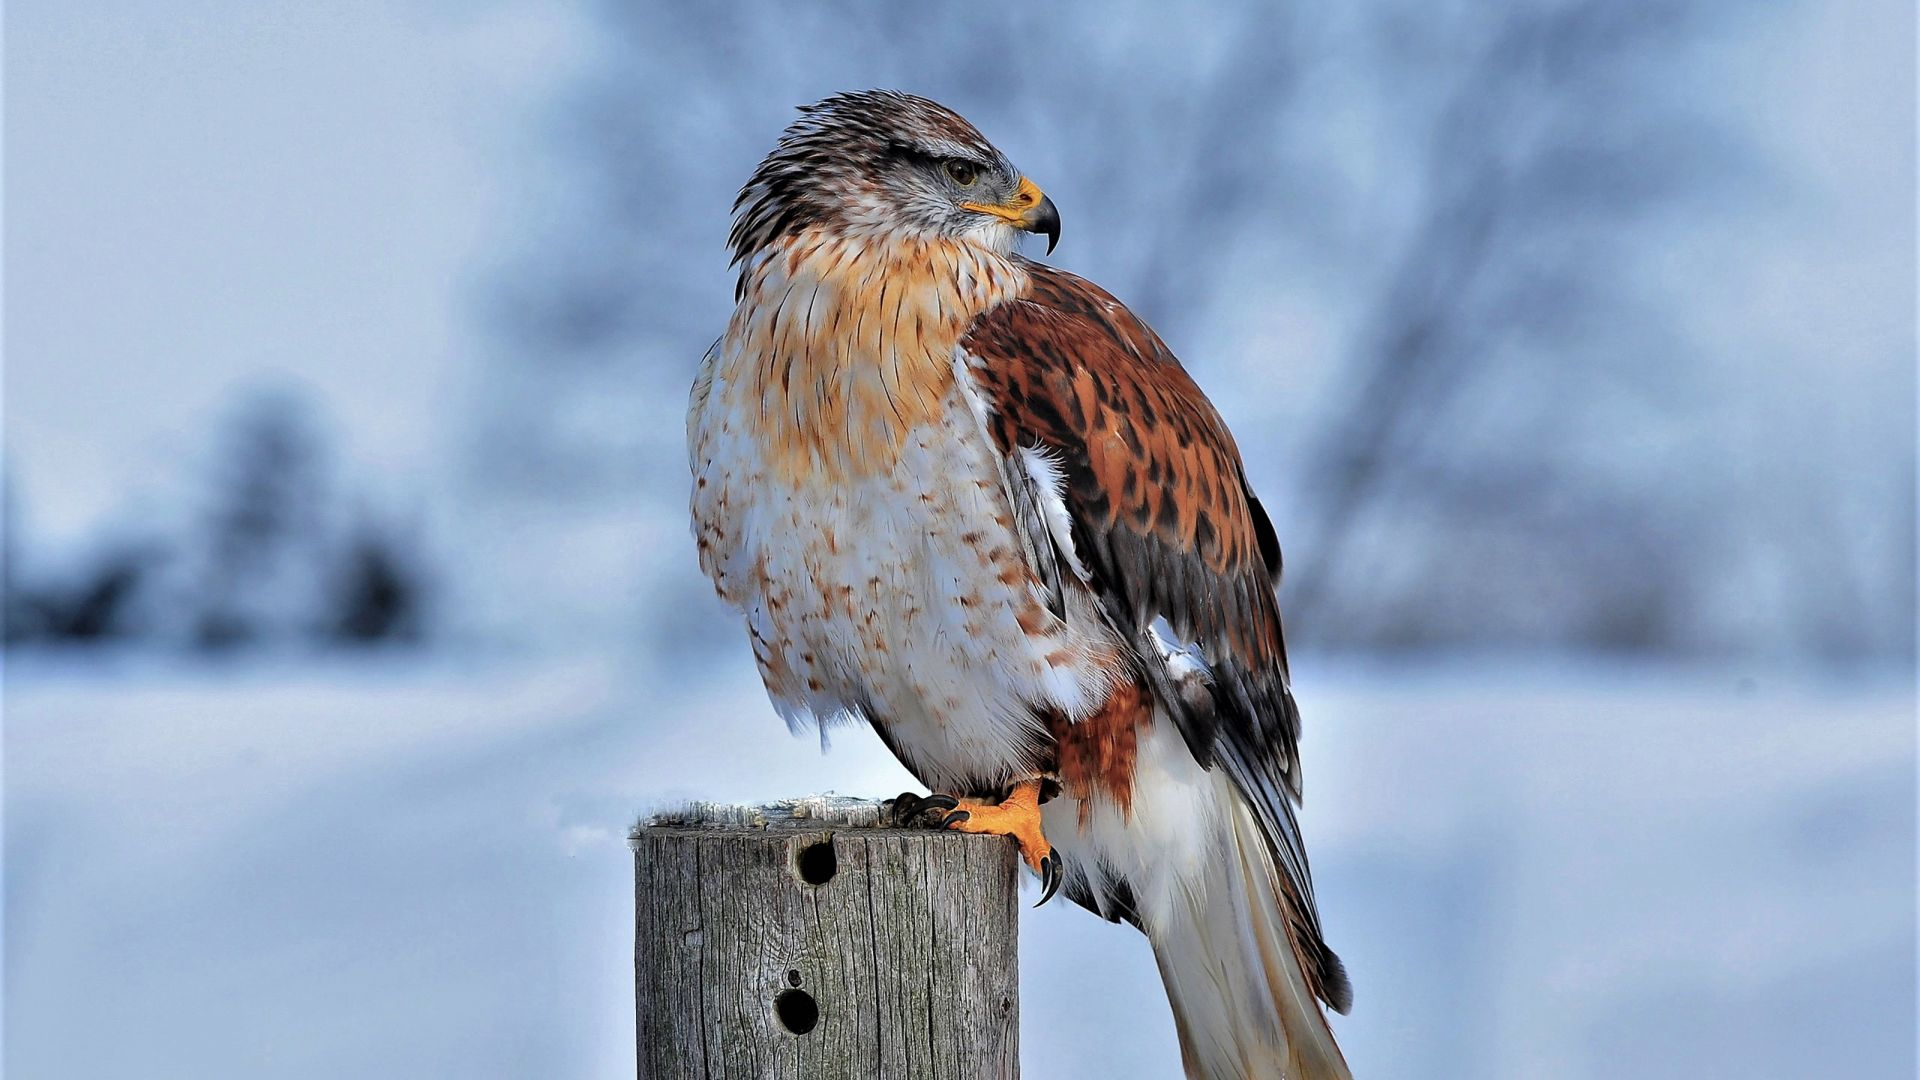 Ferruginous Hawk, bird, winter, snow, 4K (horizontal)